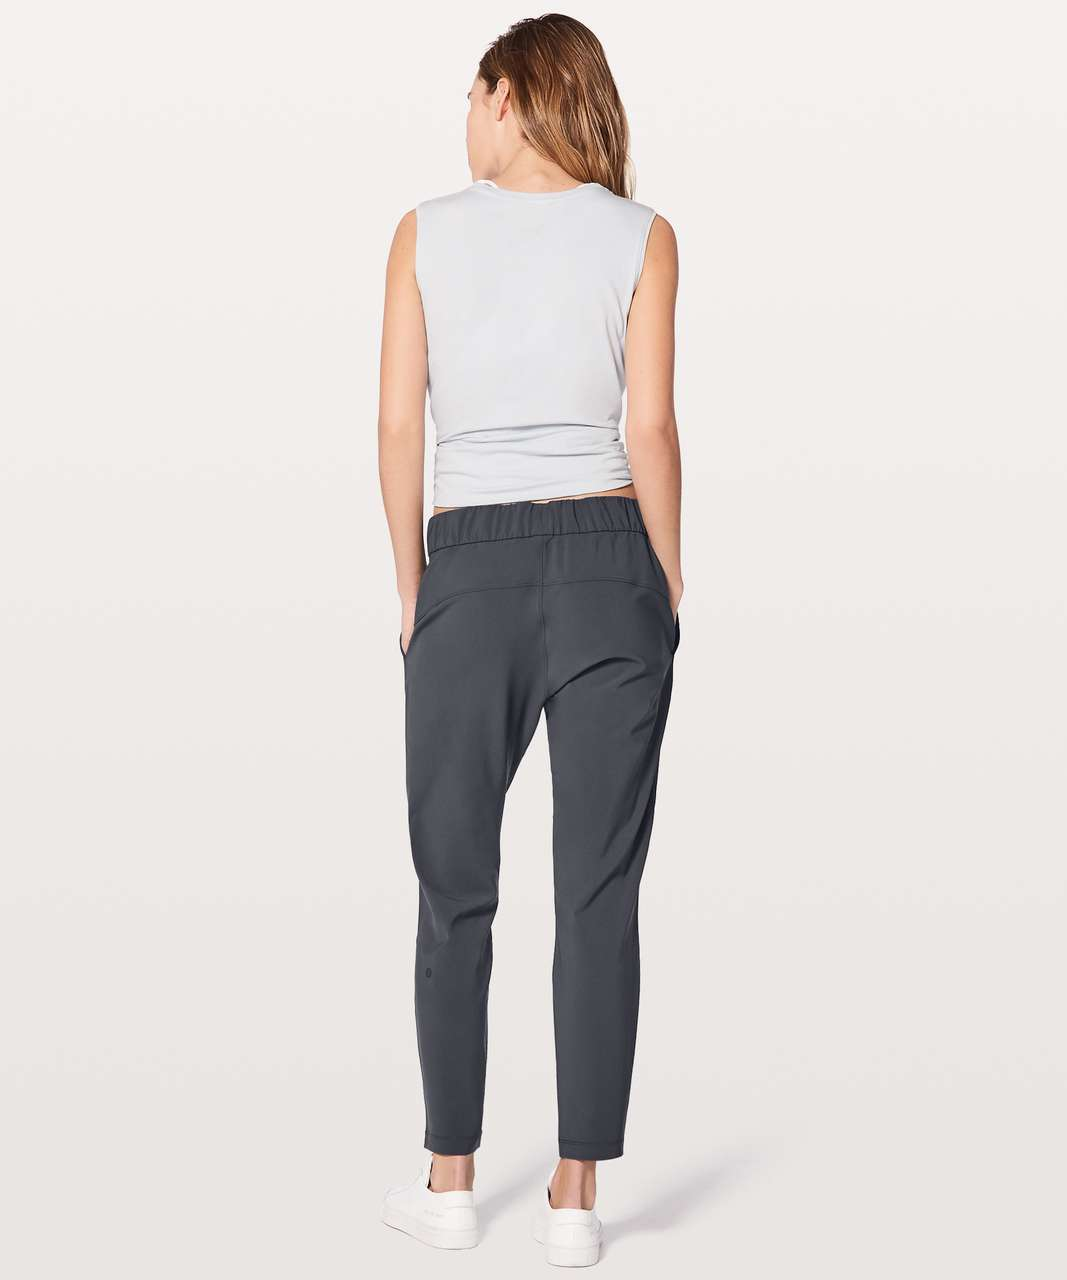 9ee90f339 Lululemon On The Fly Pant  Woven 28